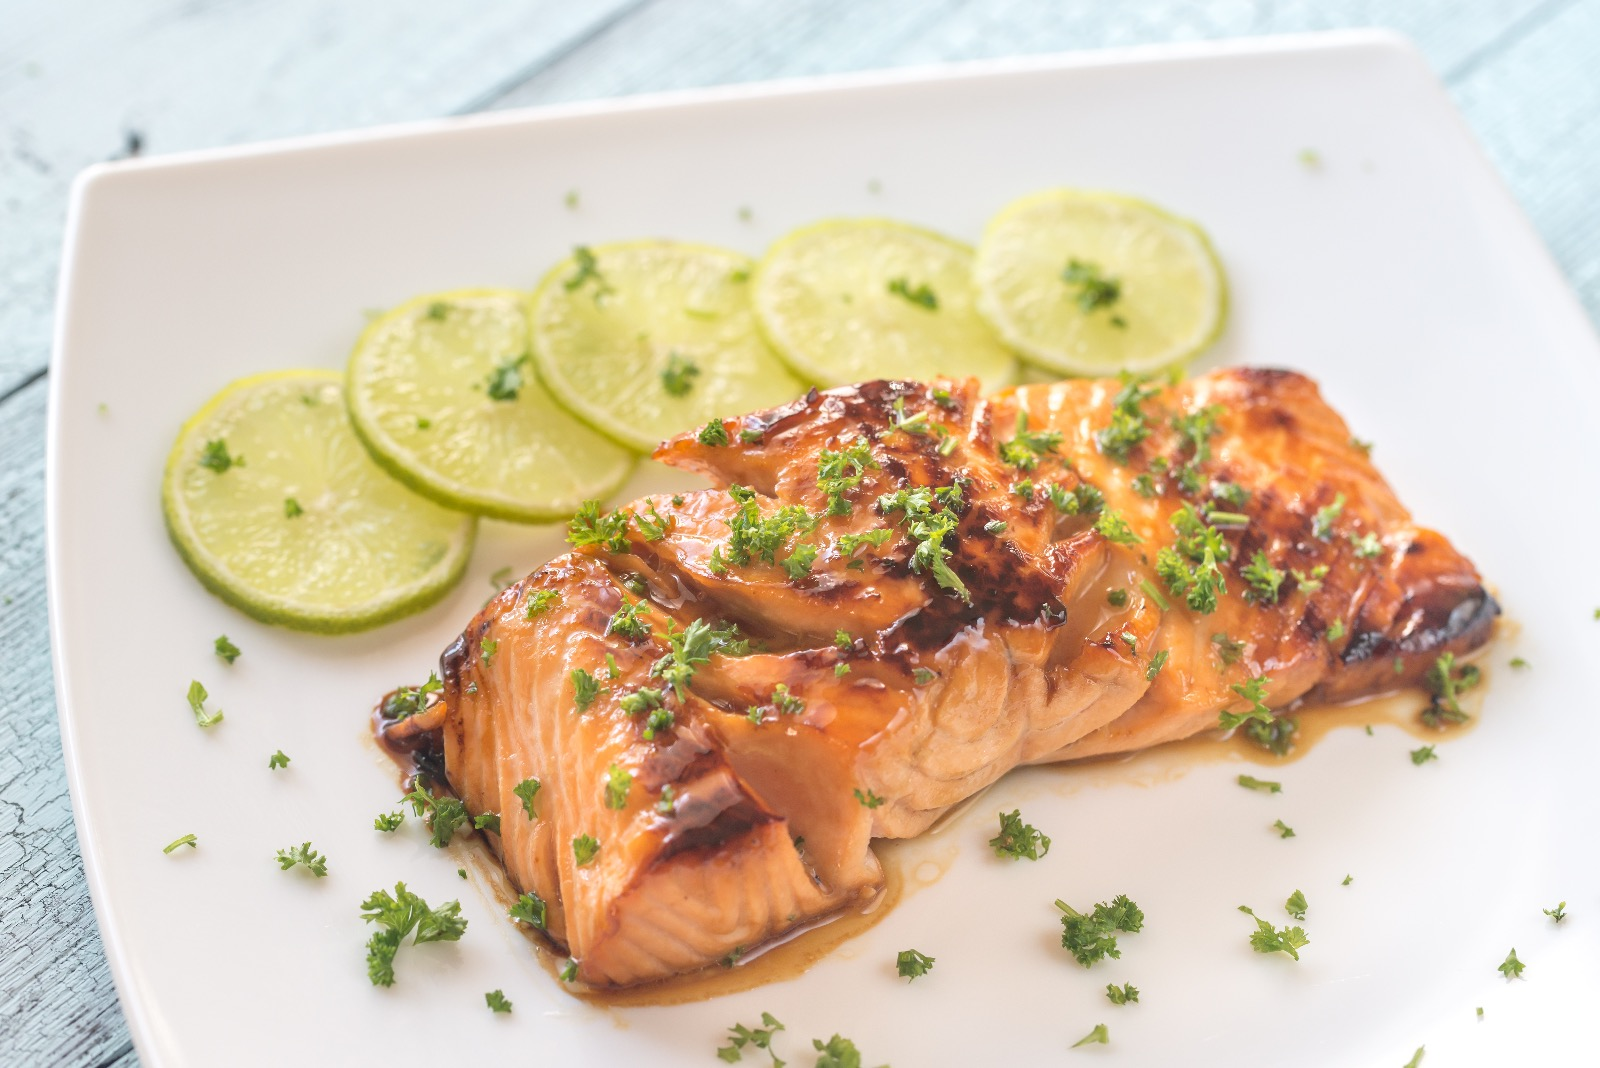 Delicious wild caught sockeye salmon - Seafood Recipes by Beck & Bulow Family